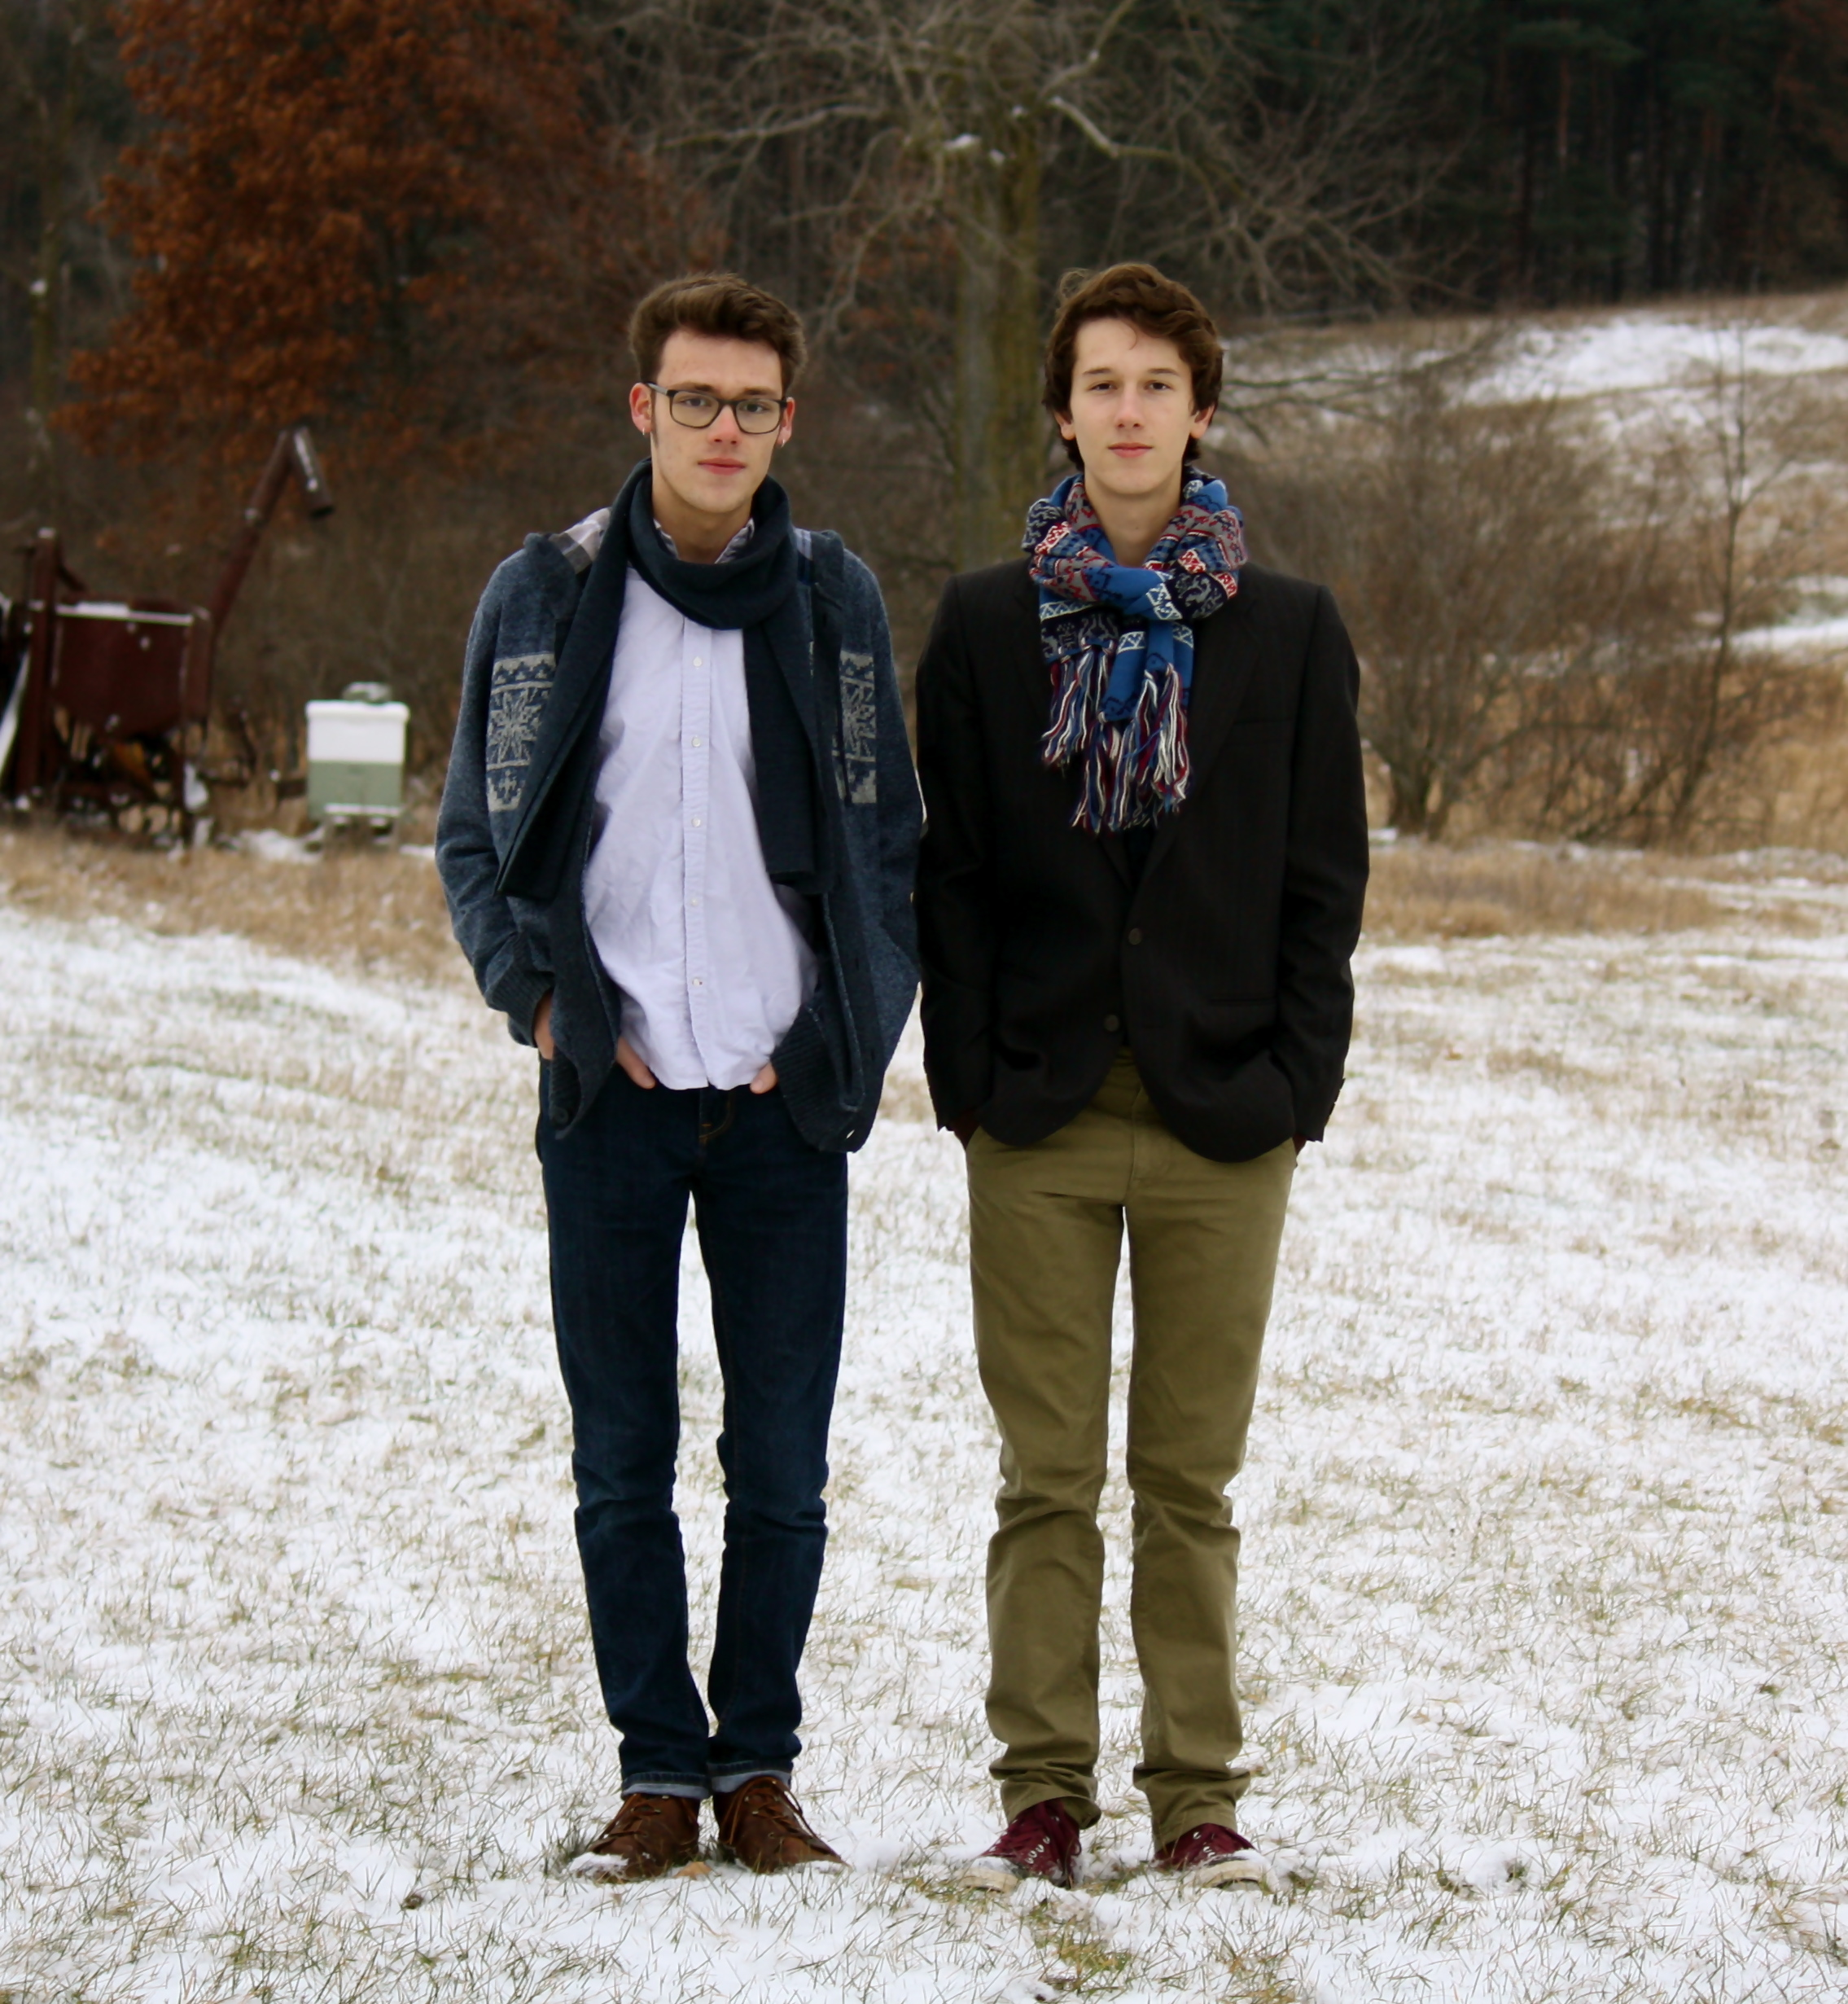 Jack is wearing a thrifted shirt and thriftedboots. Will is wearing a thrifted scarf and thrifted blazer.